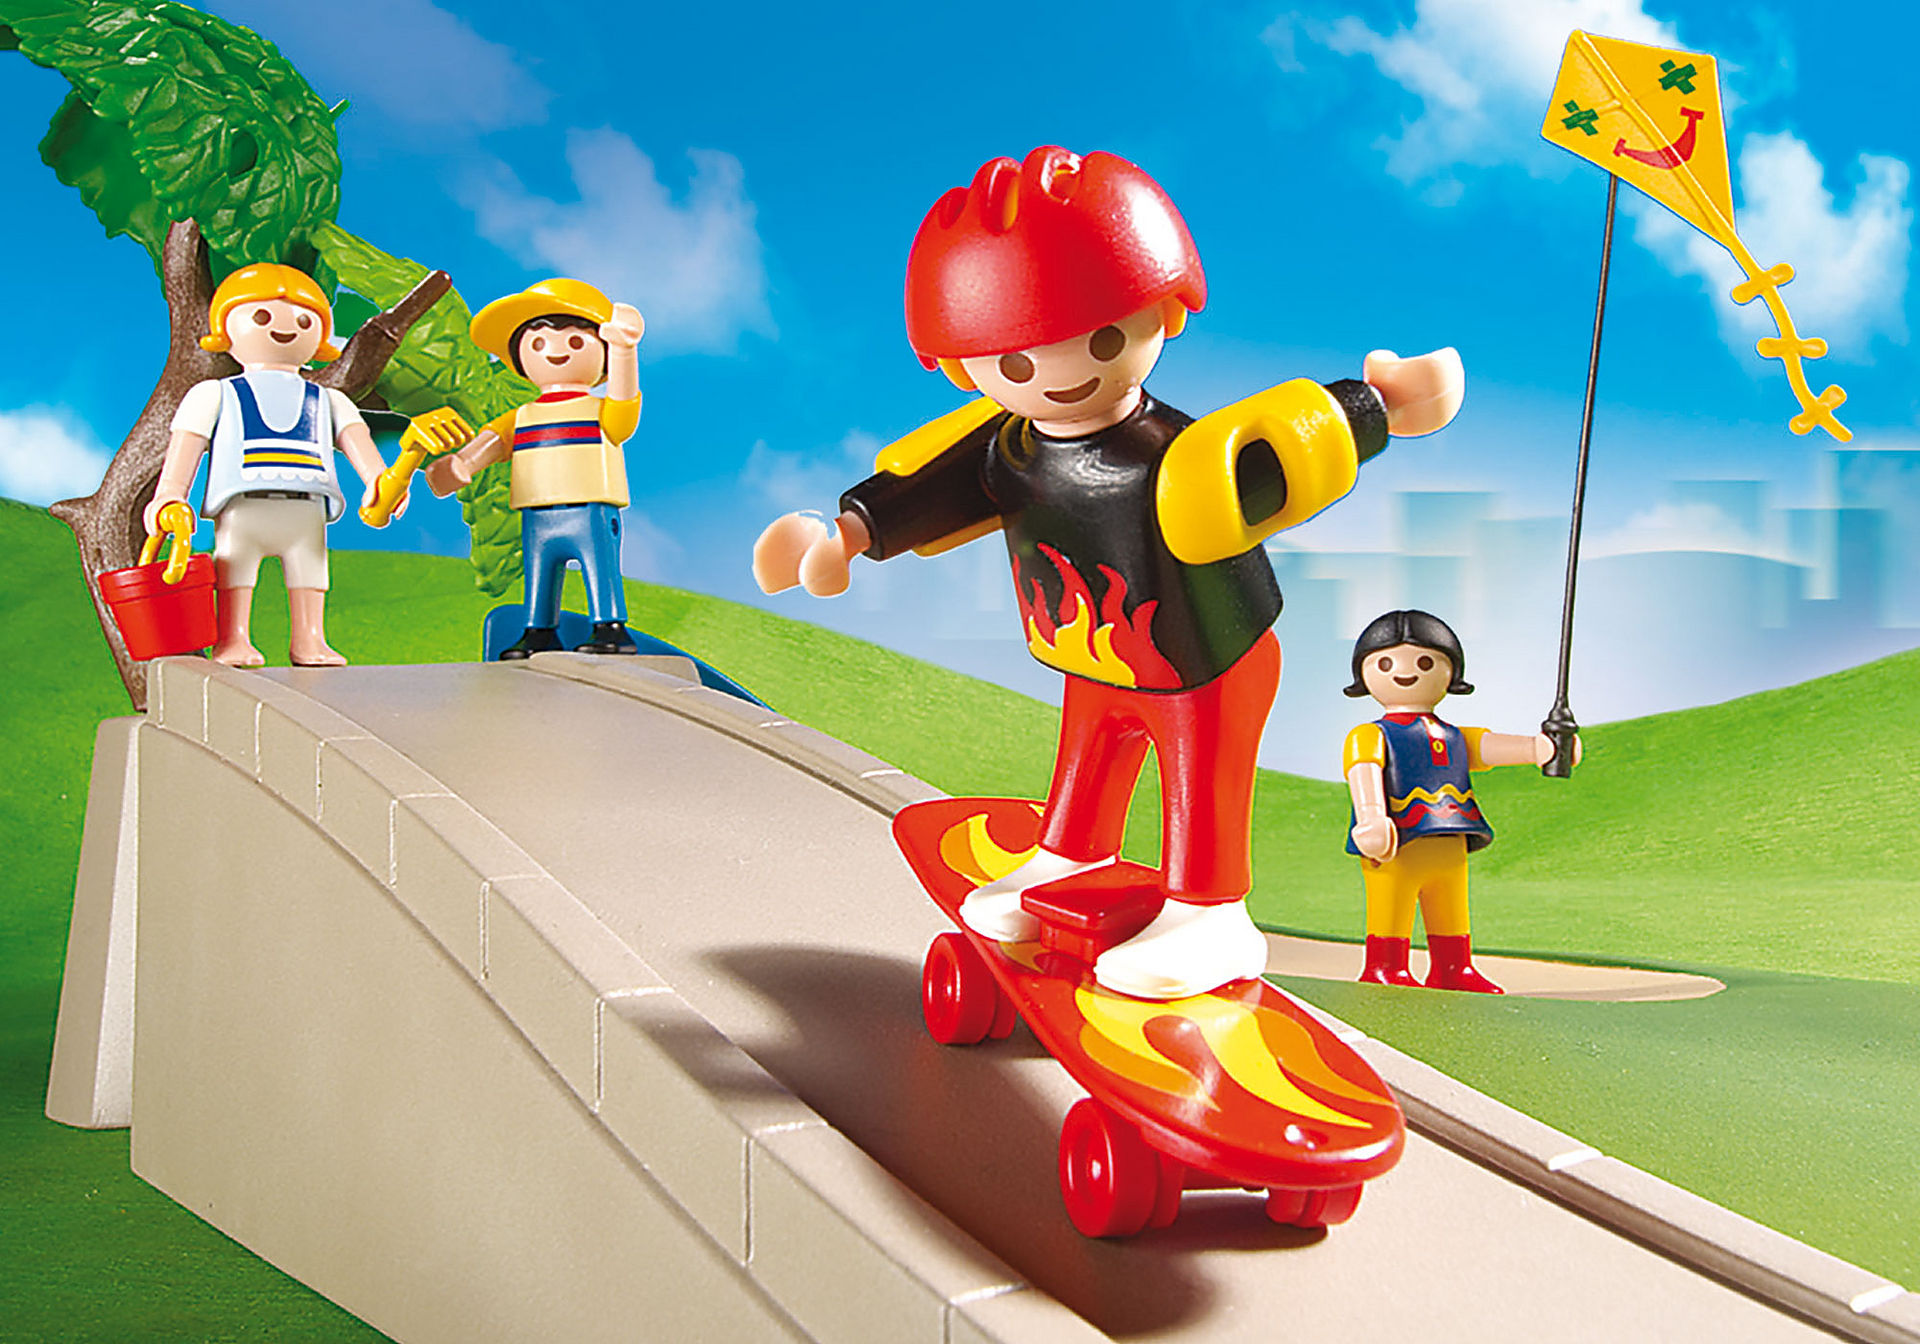 http://media.playmobil.com/i/playmobil/4132_product_extra1/Superset Speeltuin